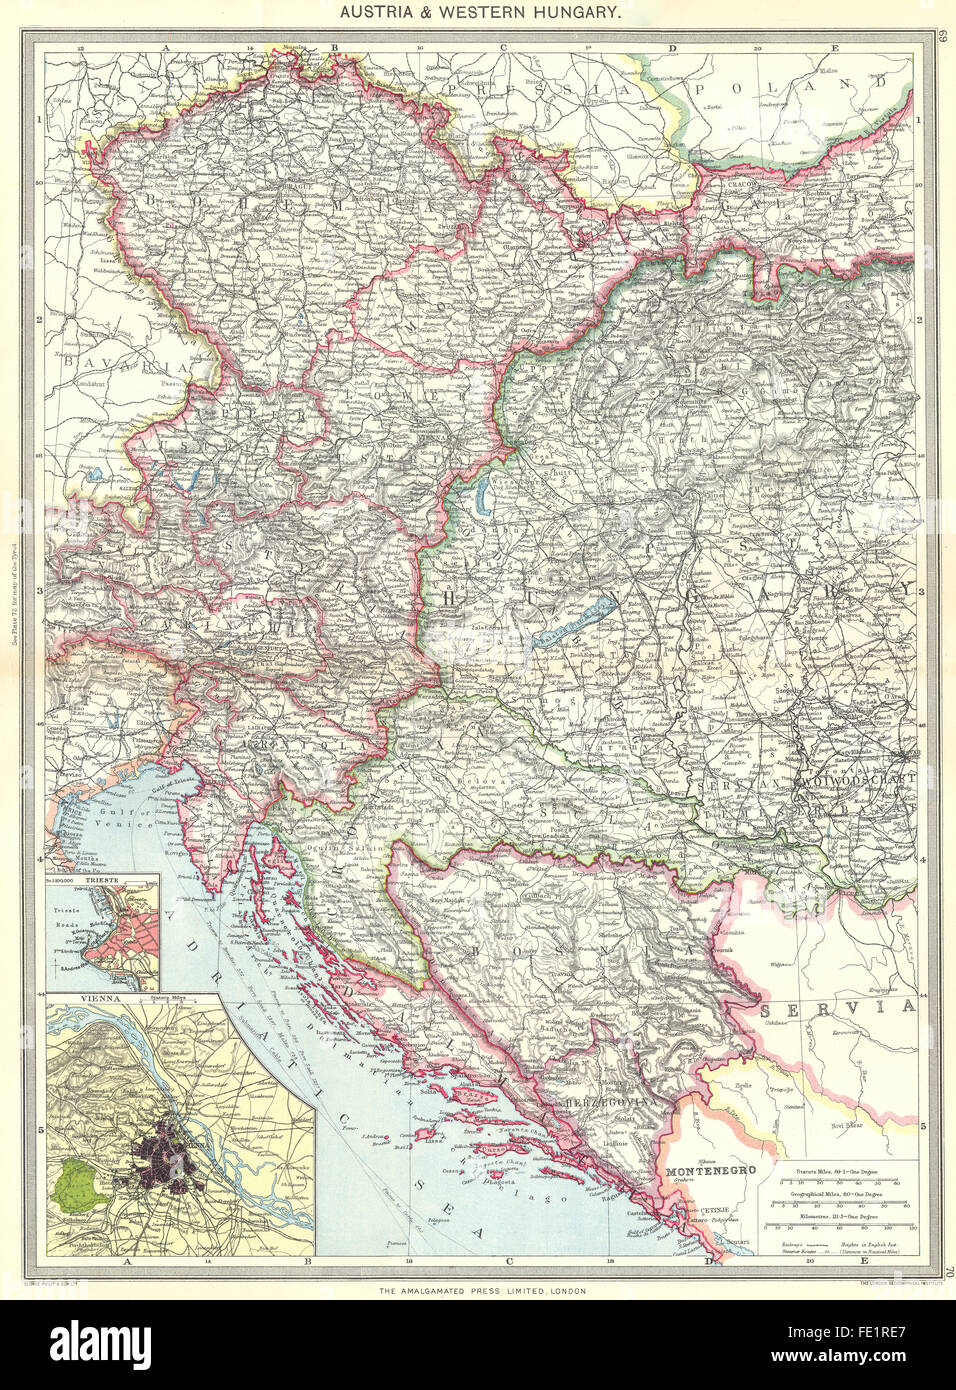 Map of vienna stock photos map of vienna stock images alamy austria western hungary map of trieste vienna 1907 stock image gumiabroncs Gallery